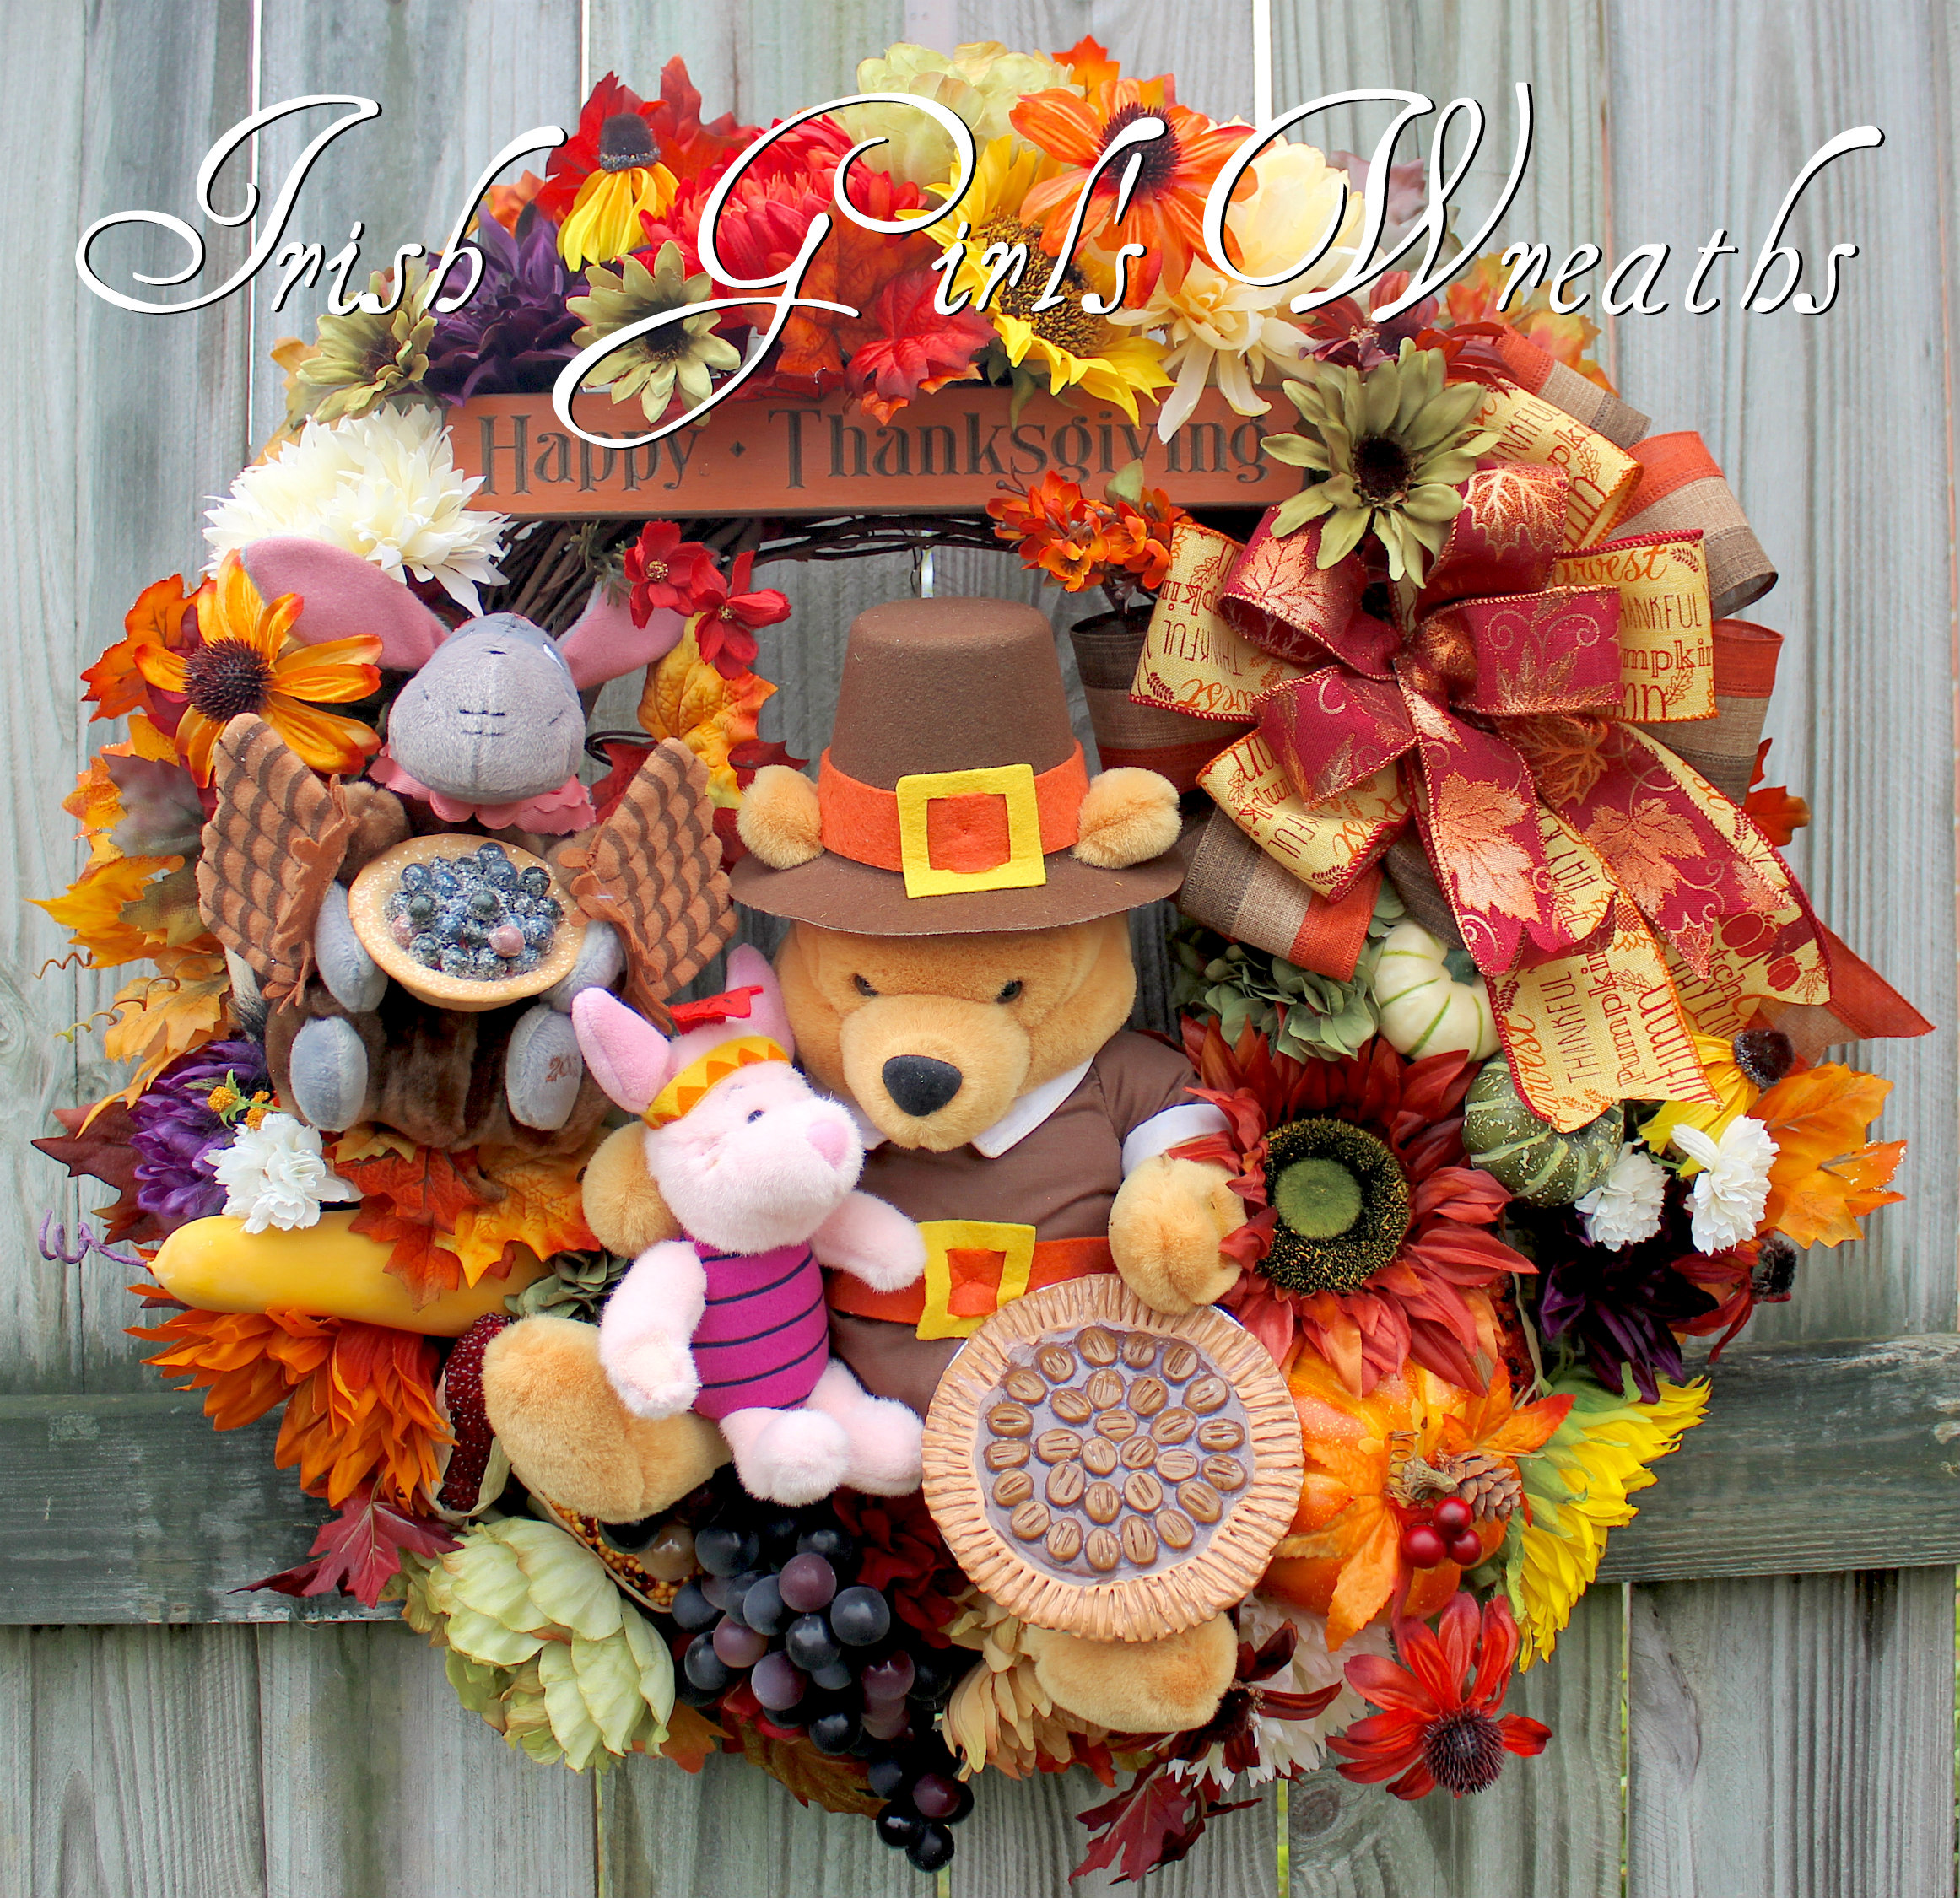 Winnie the Pooh and Friends Thanksgiving Wreath, Custom Order